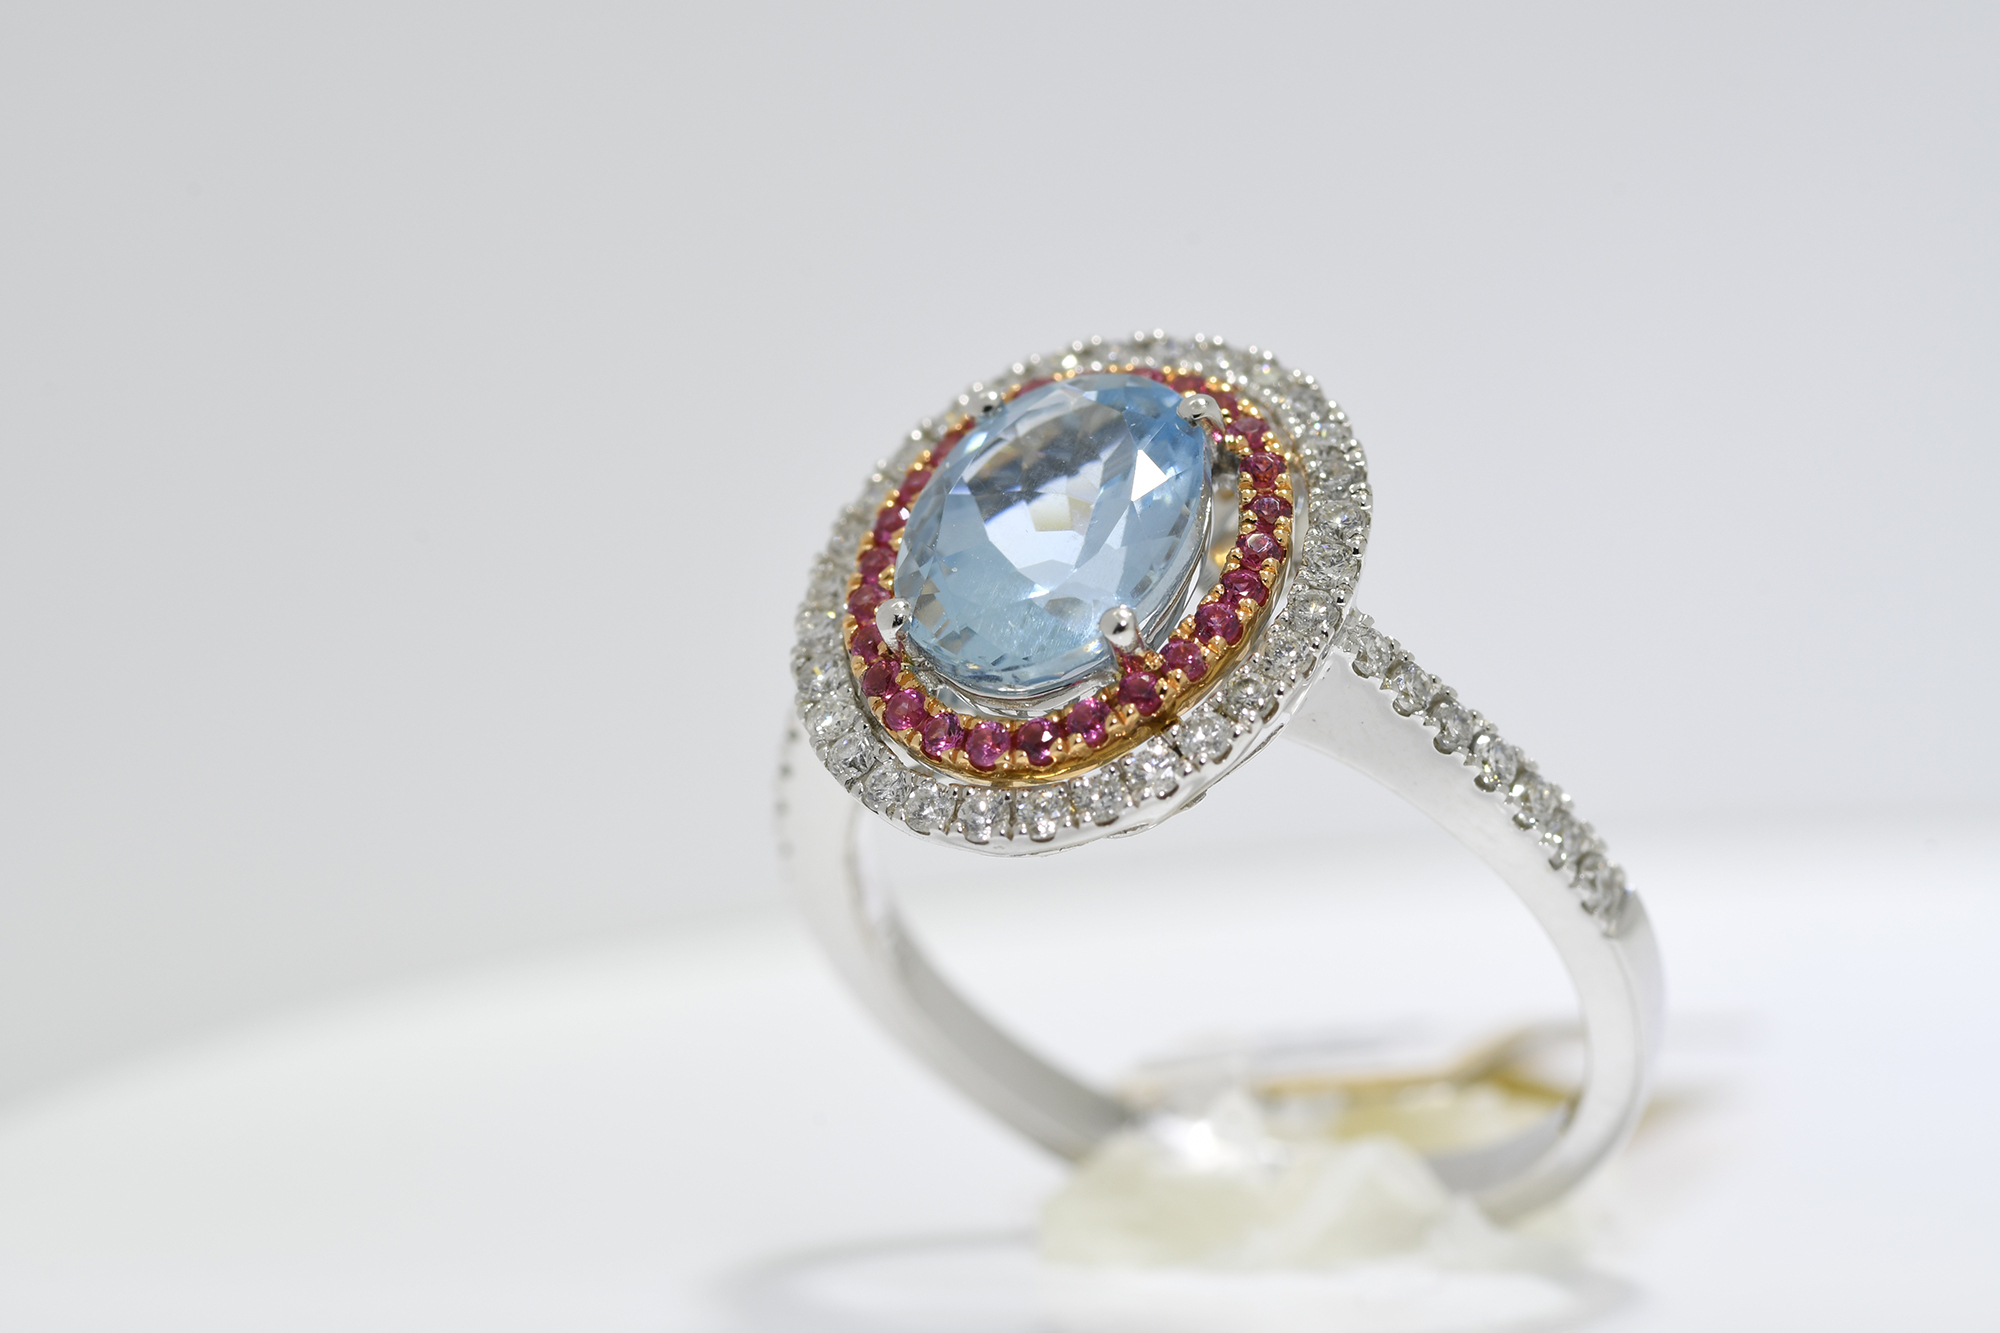 Aquamarine, Pink Sapphire & Diamond Ring - Image 3 of 3